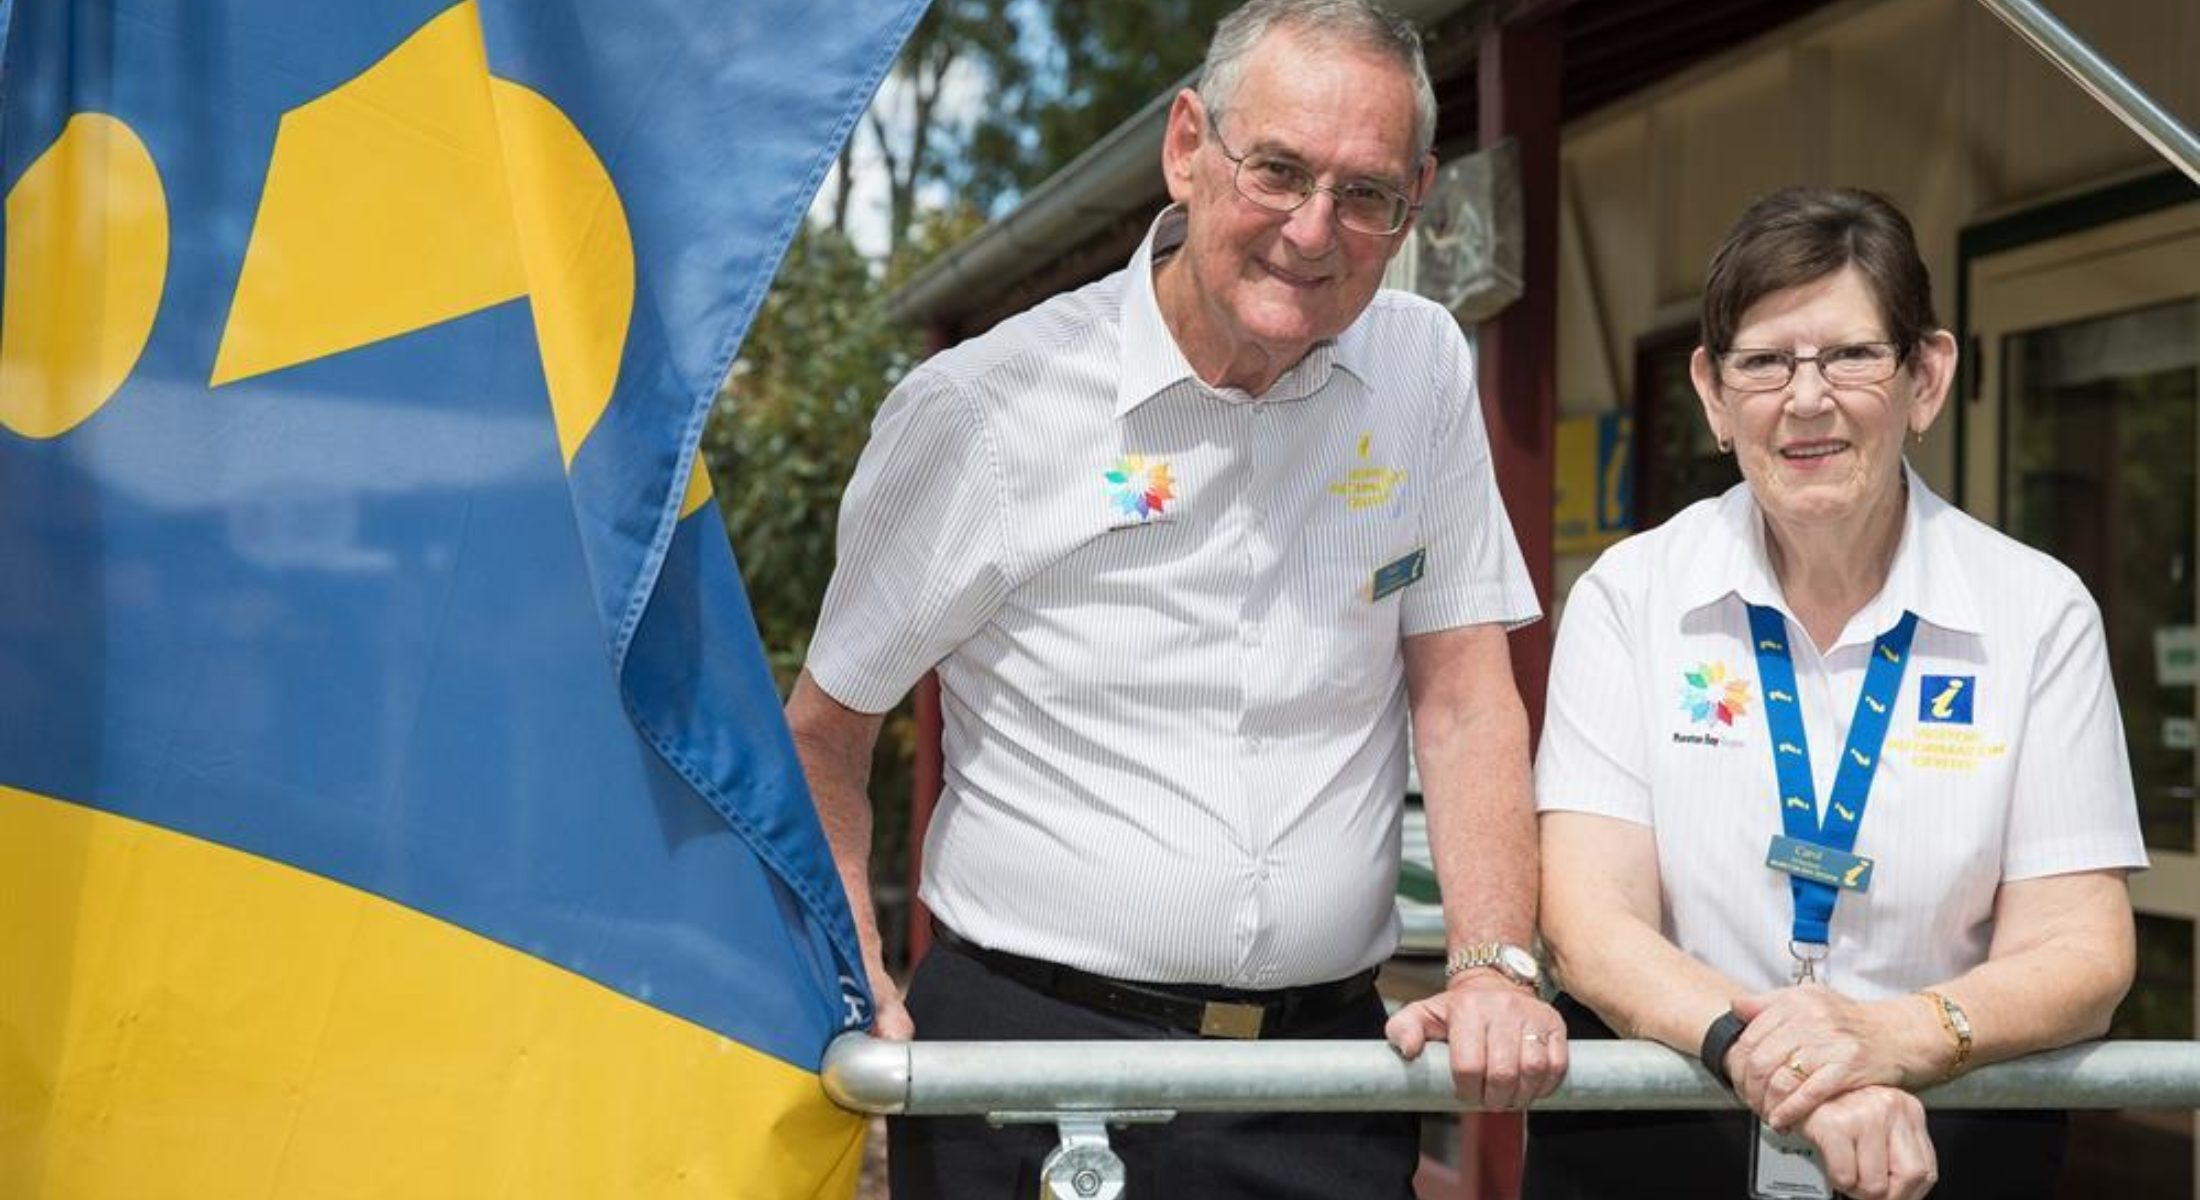 Samford Volunteers Carol And Peter Williams Moreton Bay Region